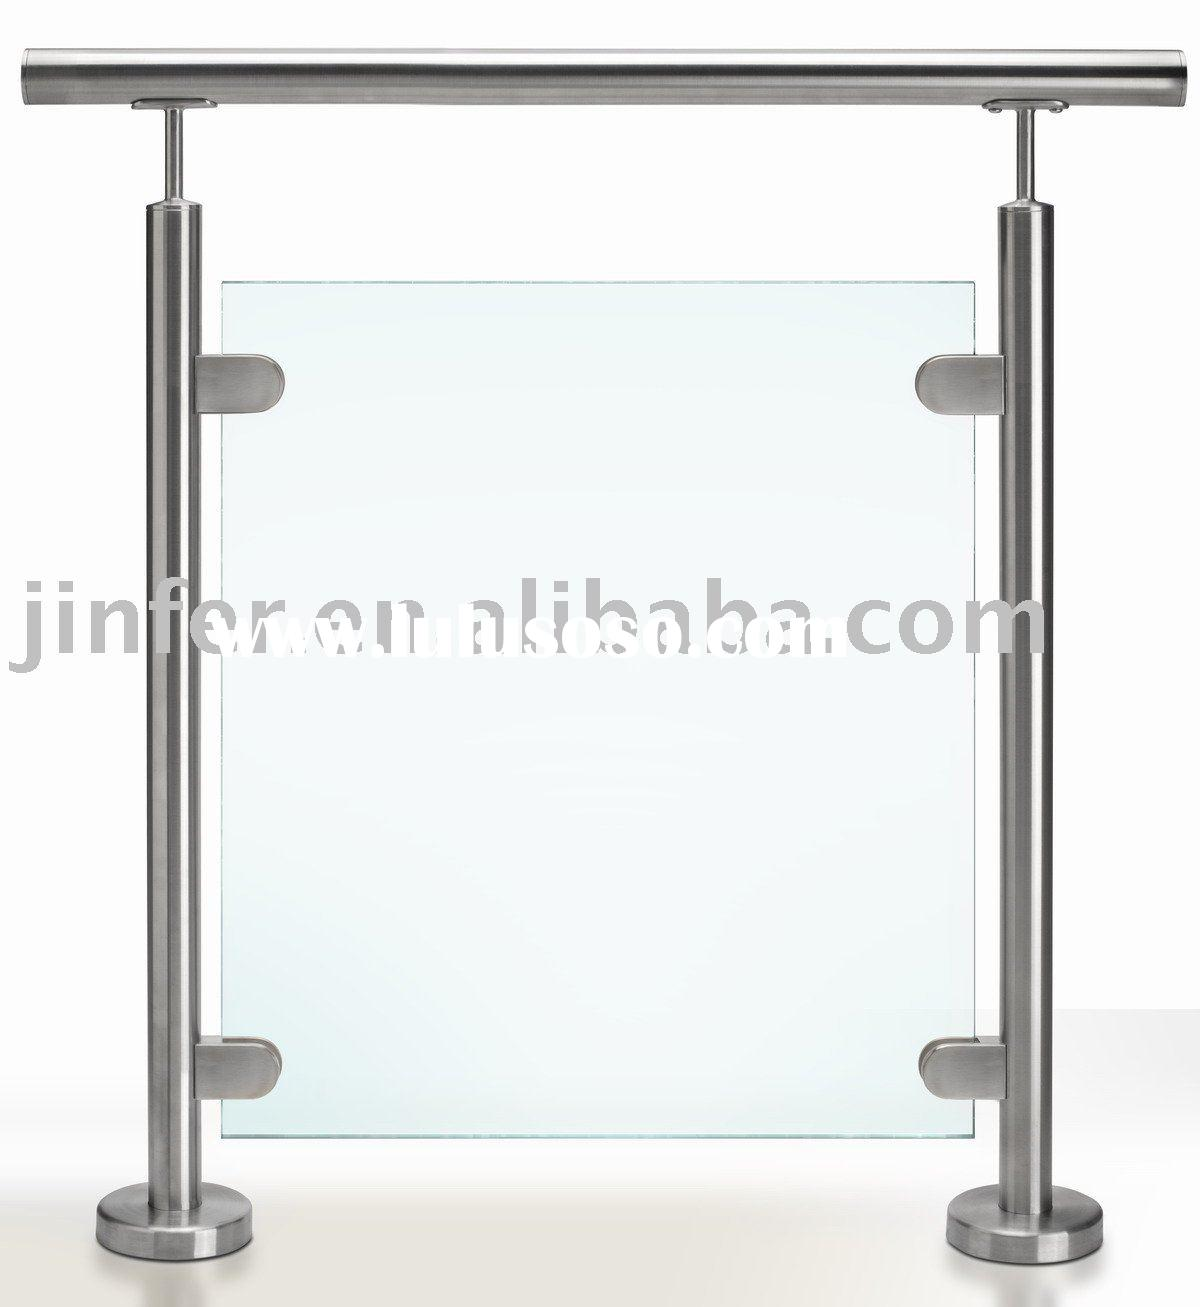 Stainless steel Railing System/inox baluster/cable railing/modular balustrade system/stainless raili